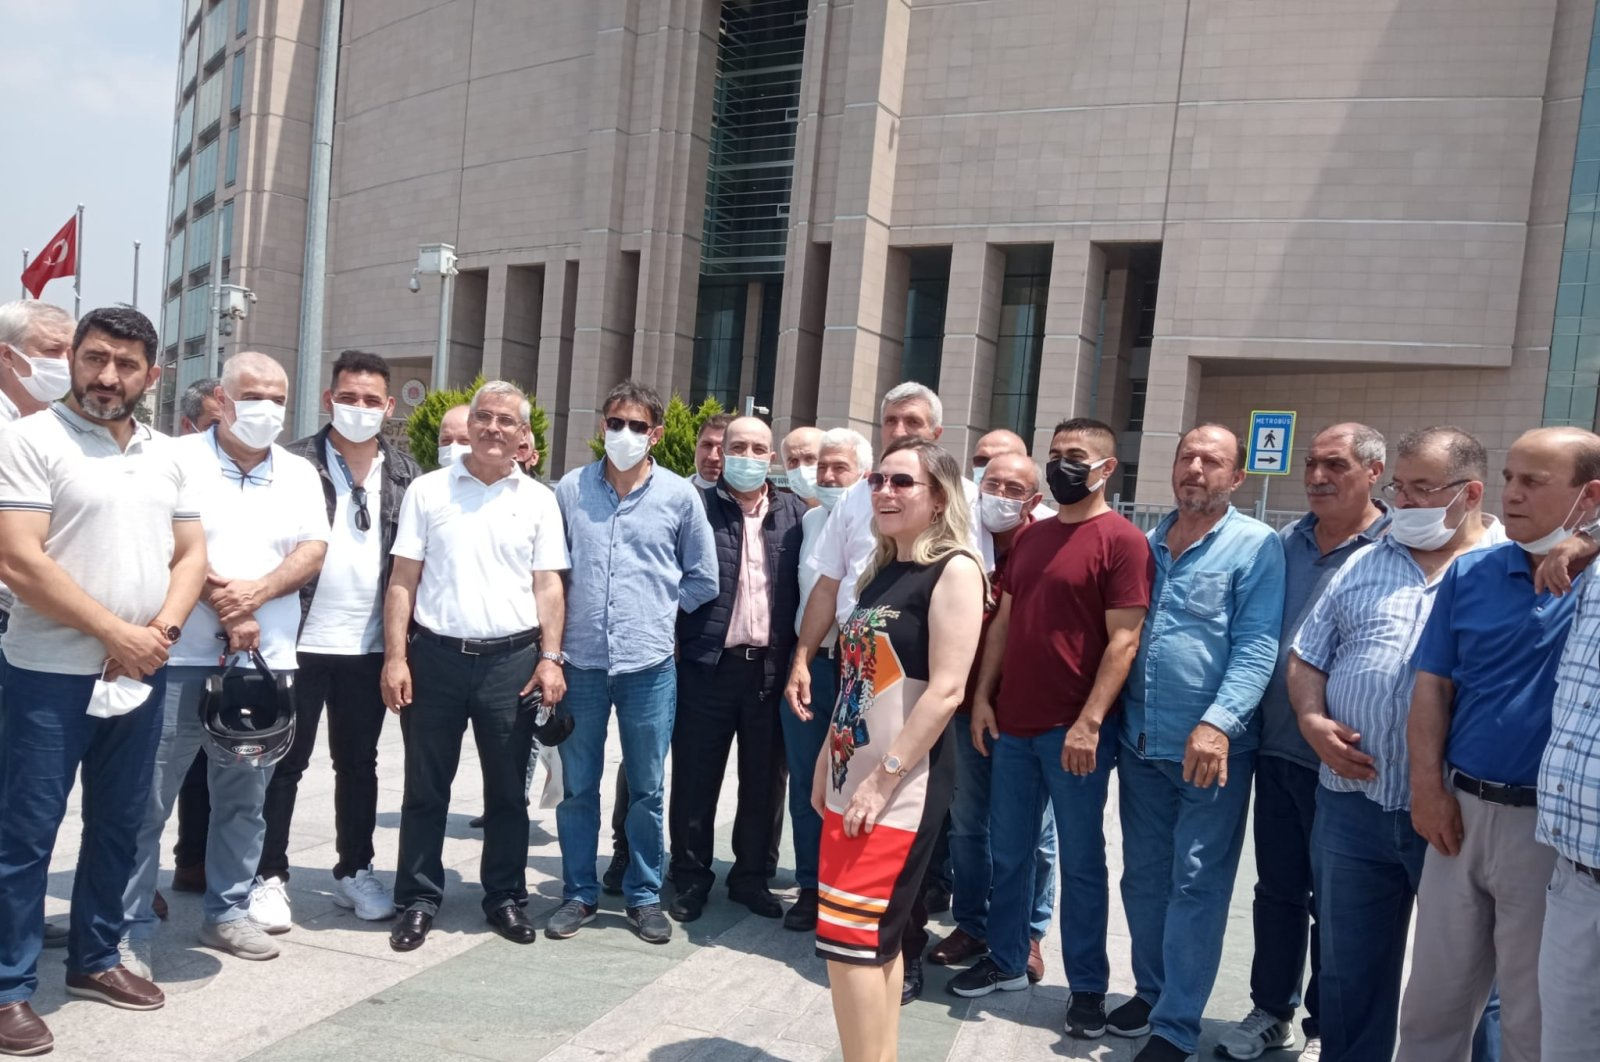 Firefighters and their lawyer outside the courthouse in Istanbul, Turkey, June 24, 2021. (DHA PHOTO)